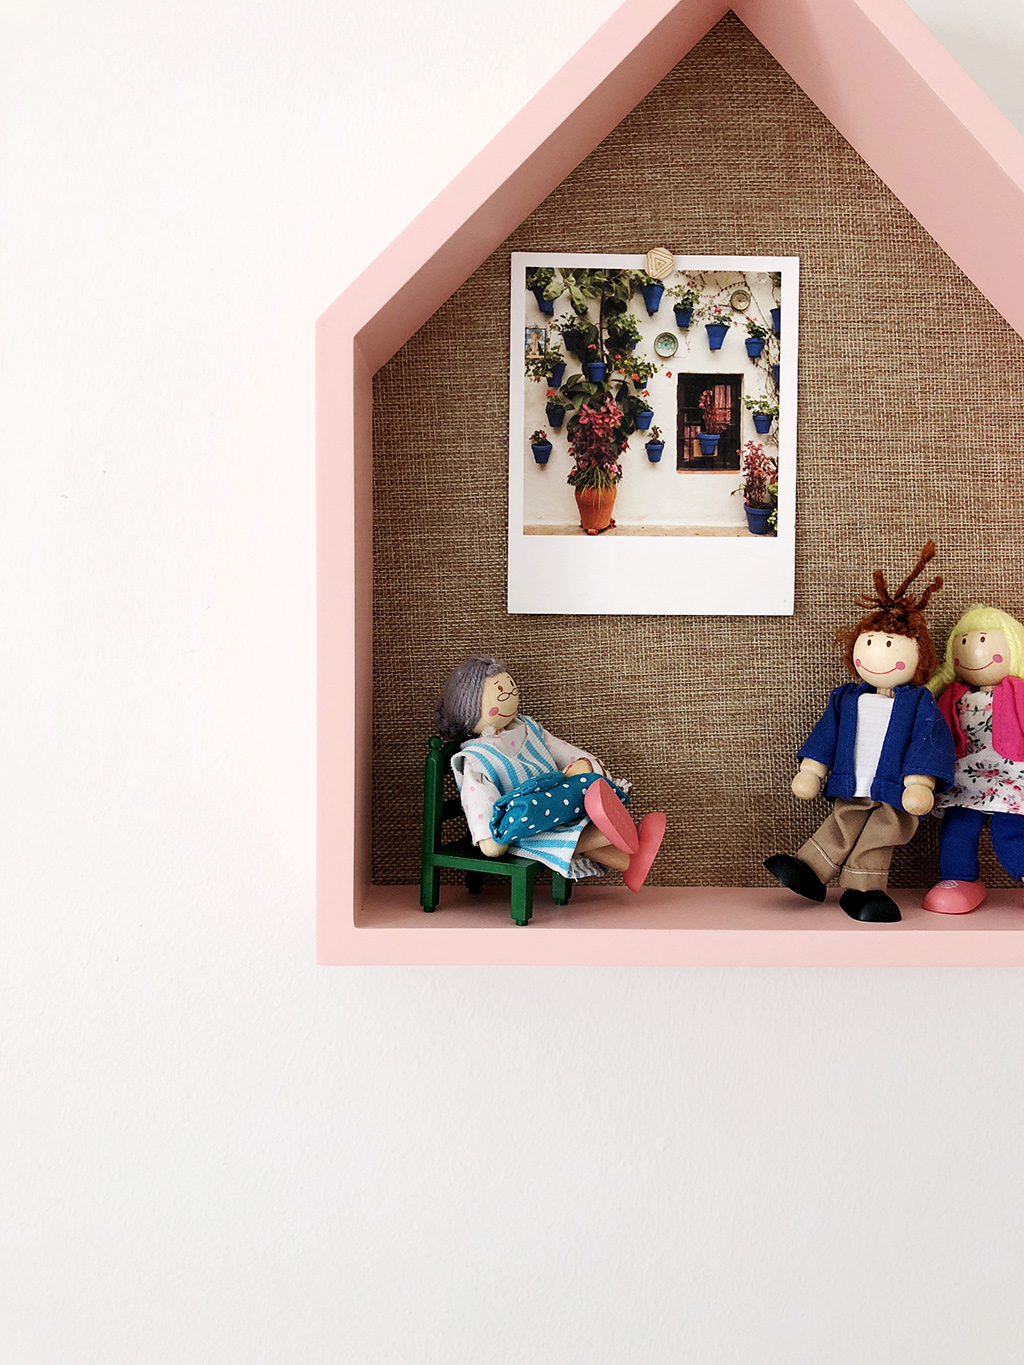 cubby with doll house figures